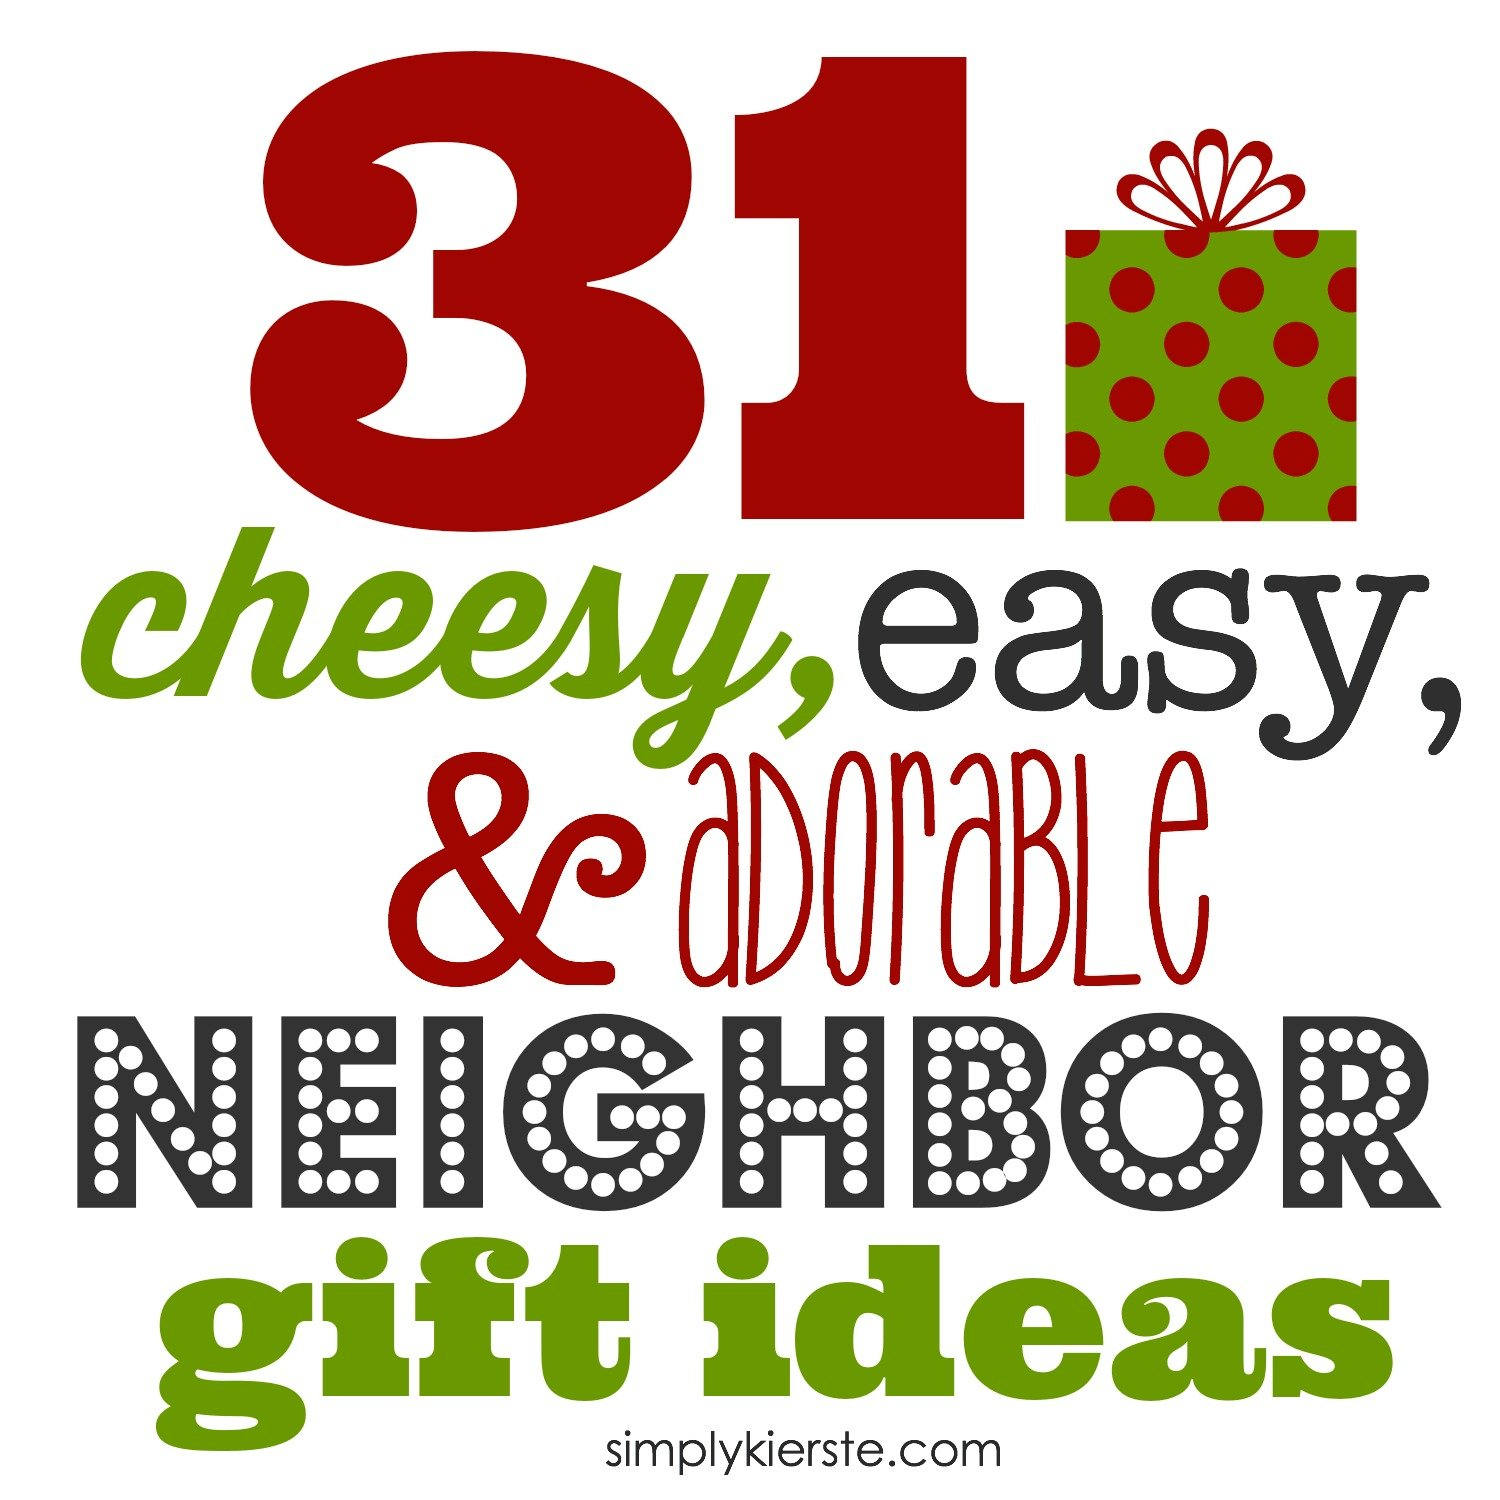 31 Cheesy, Easy & Adorable Neighbor Gift Ideas | simplykierste.com